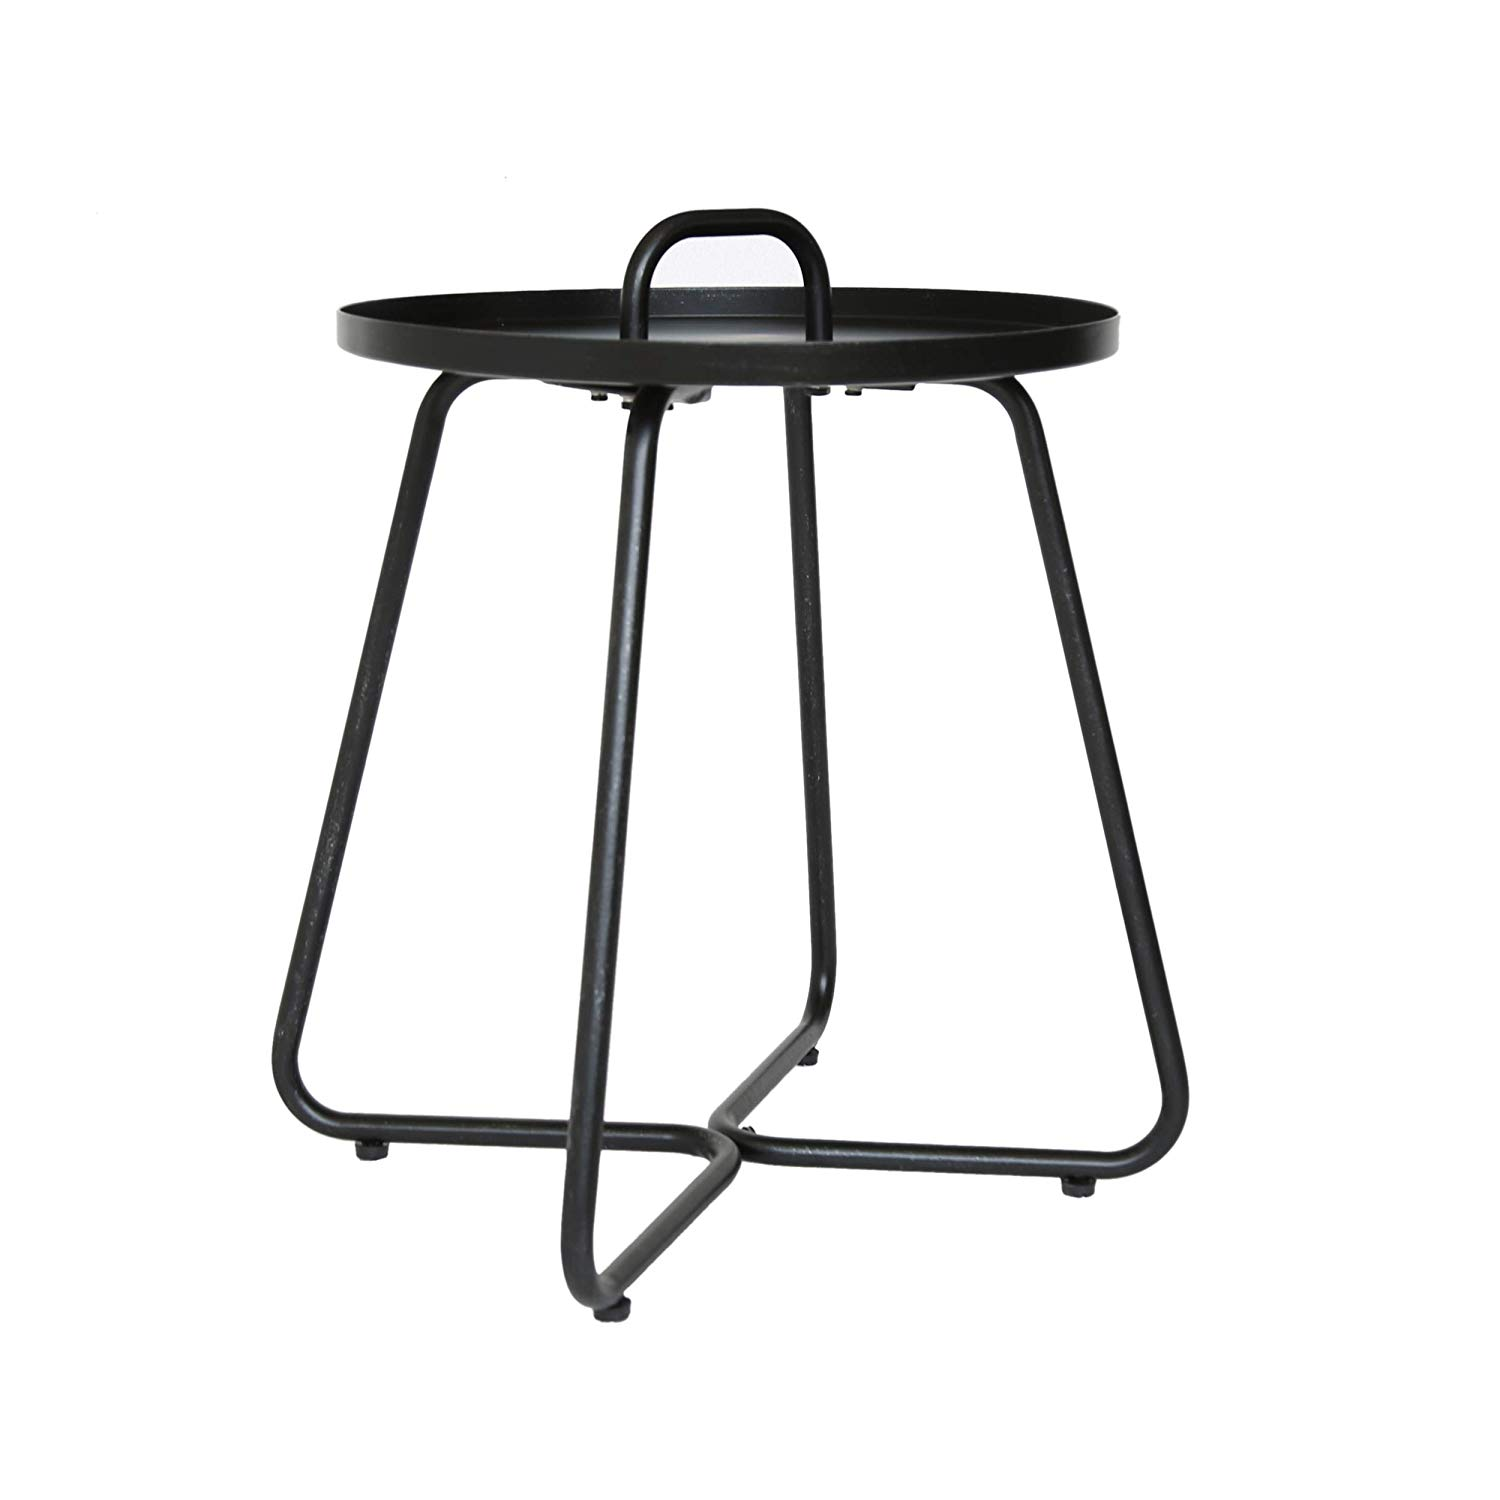 great furniture amy outdoor aluminum side table matte black garden bedroom night lamps yard umbrella grey linen tablecloth entryway with shelves maple white high gloss narrow